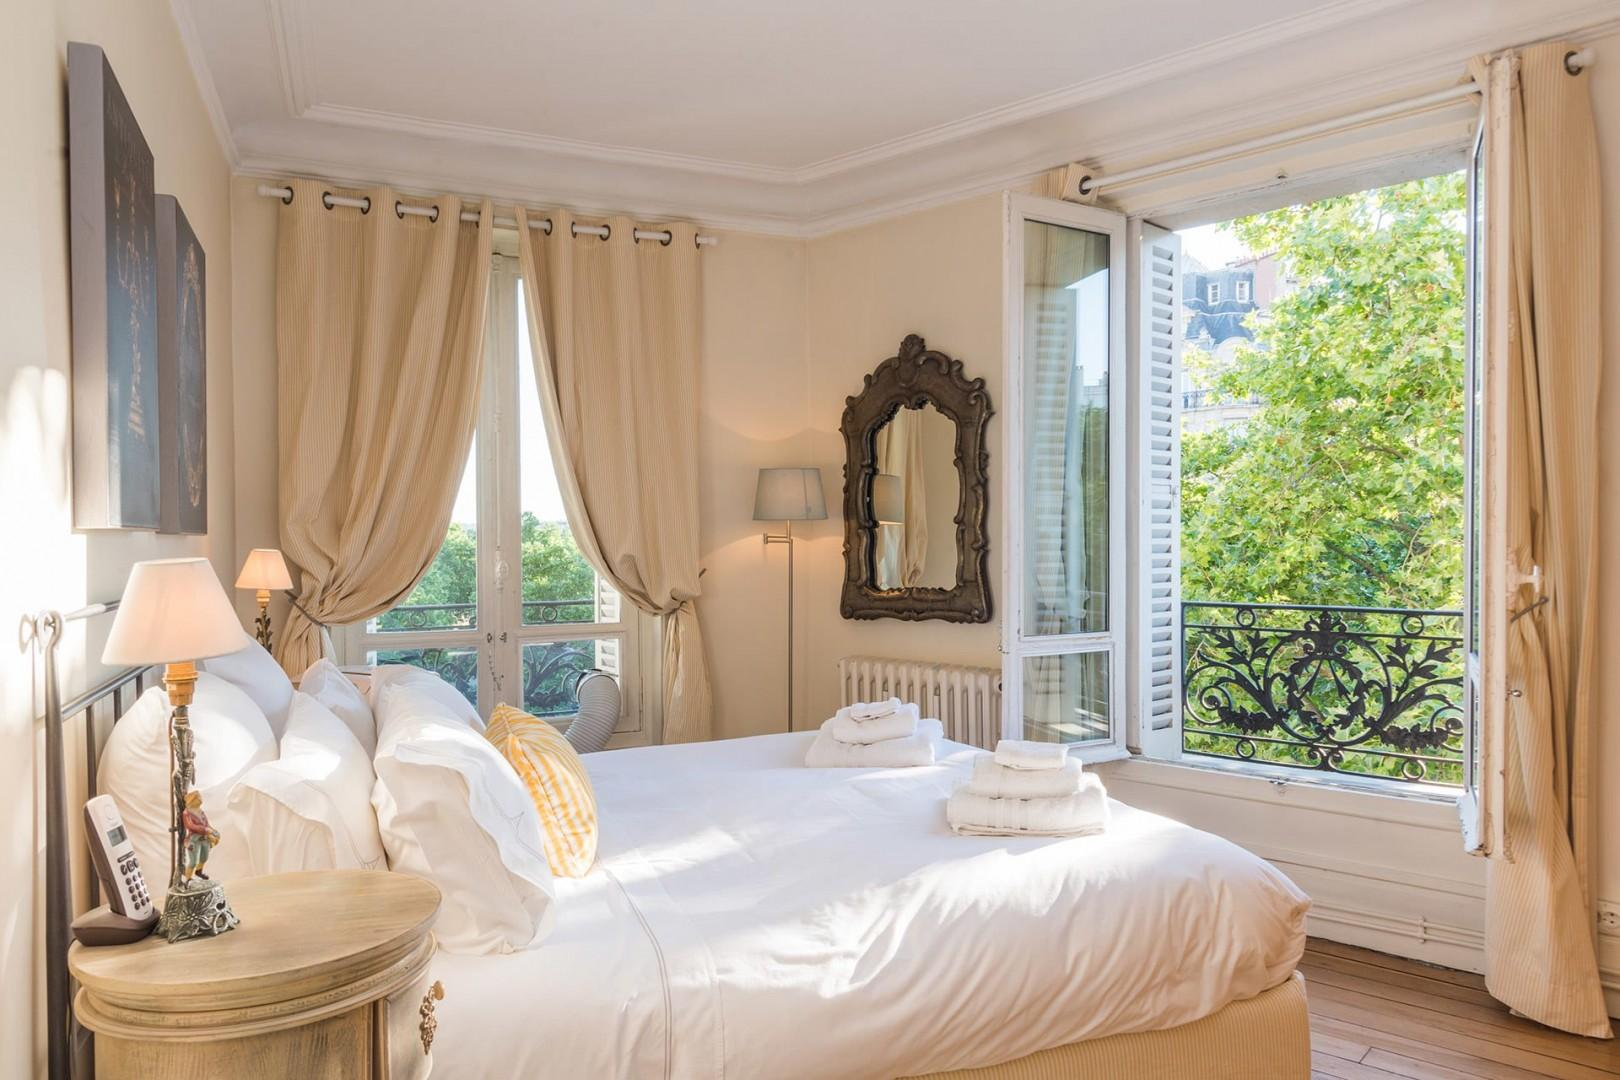 Step into the gorgeous French bedroom with a luxurious bed.